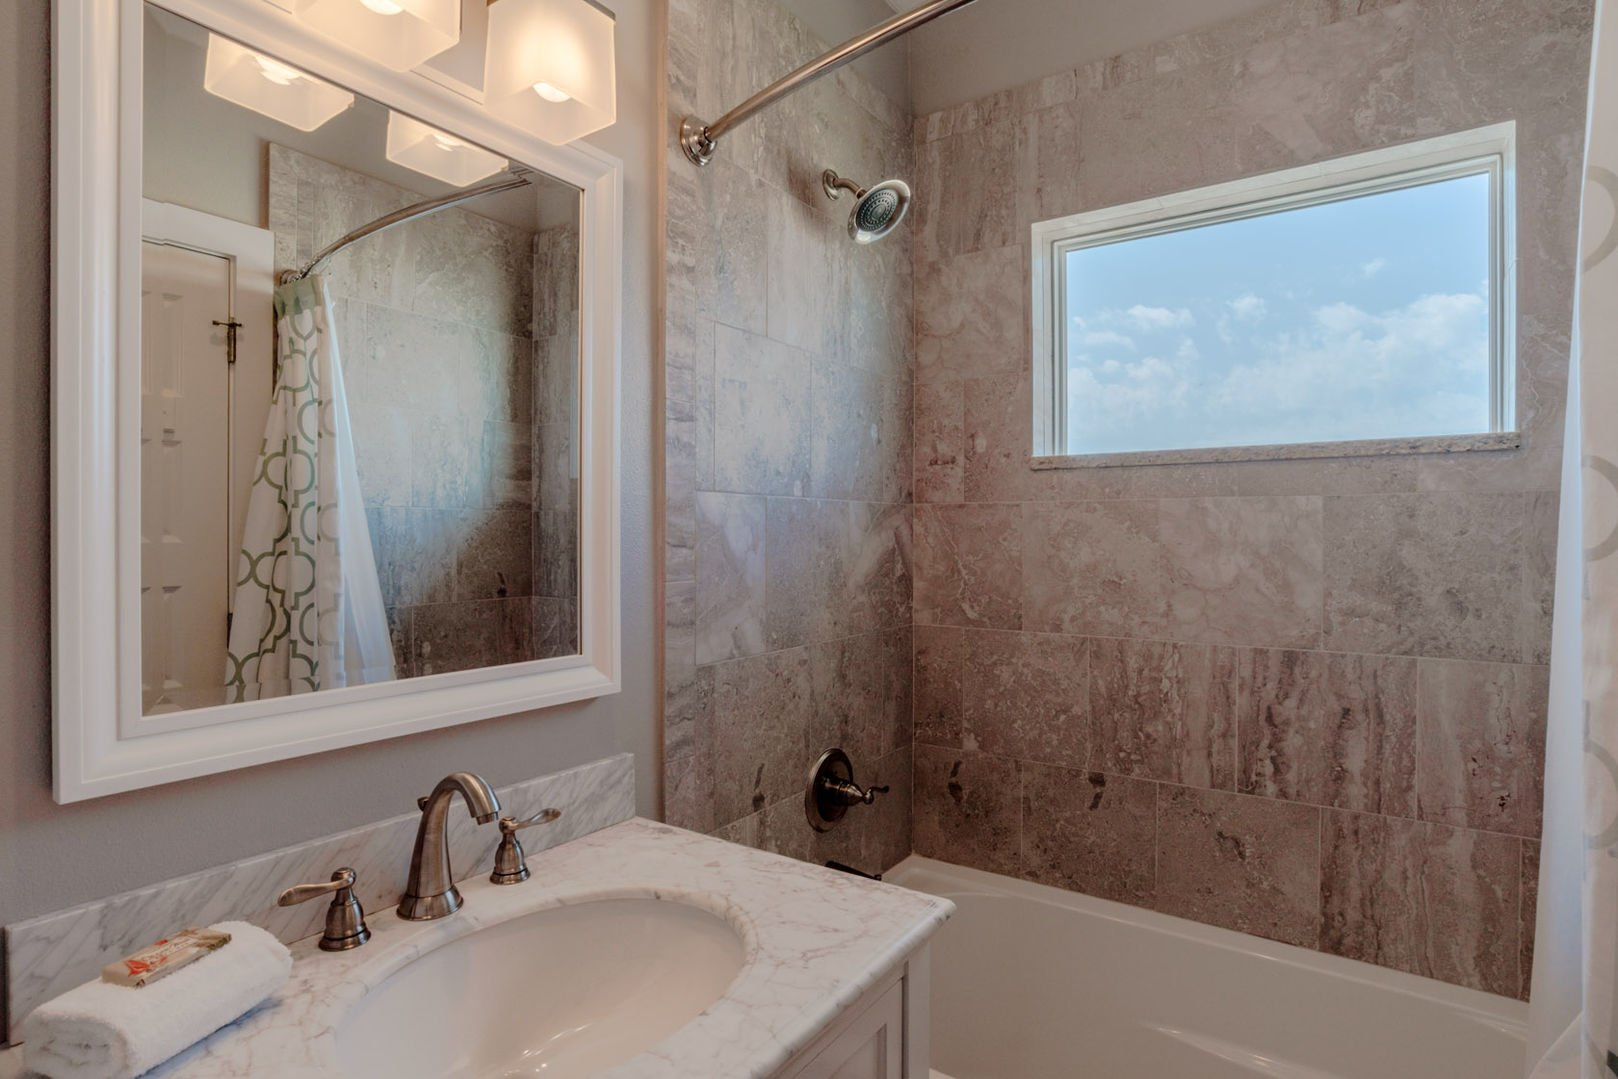 Bathroom with a Tub/Shower Combo and Natural Light